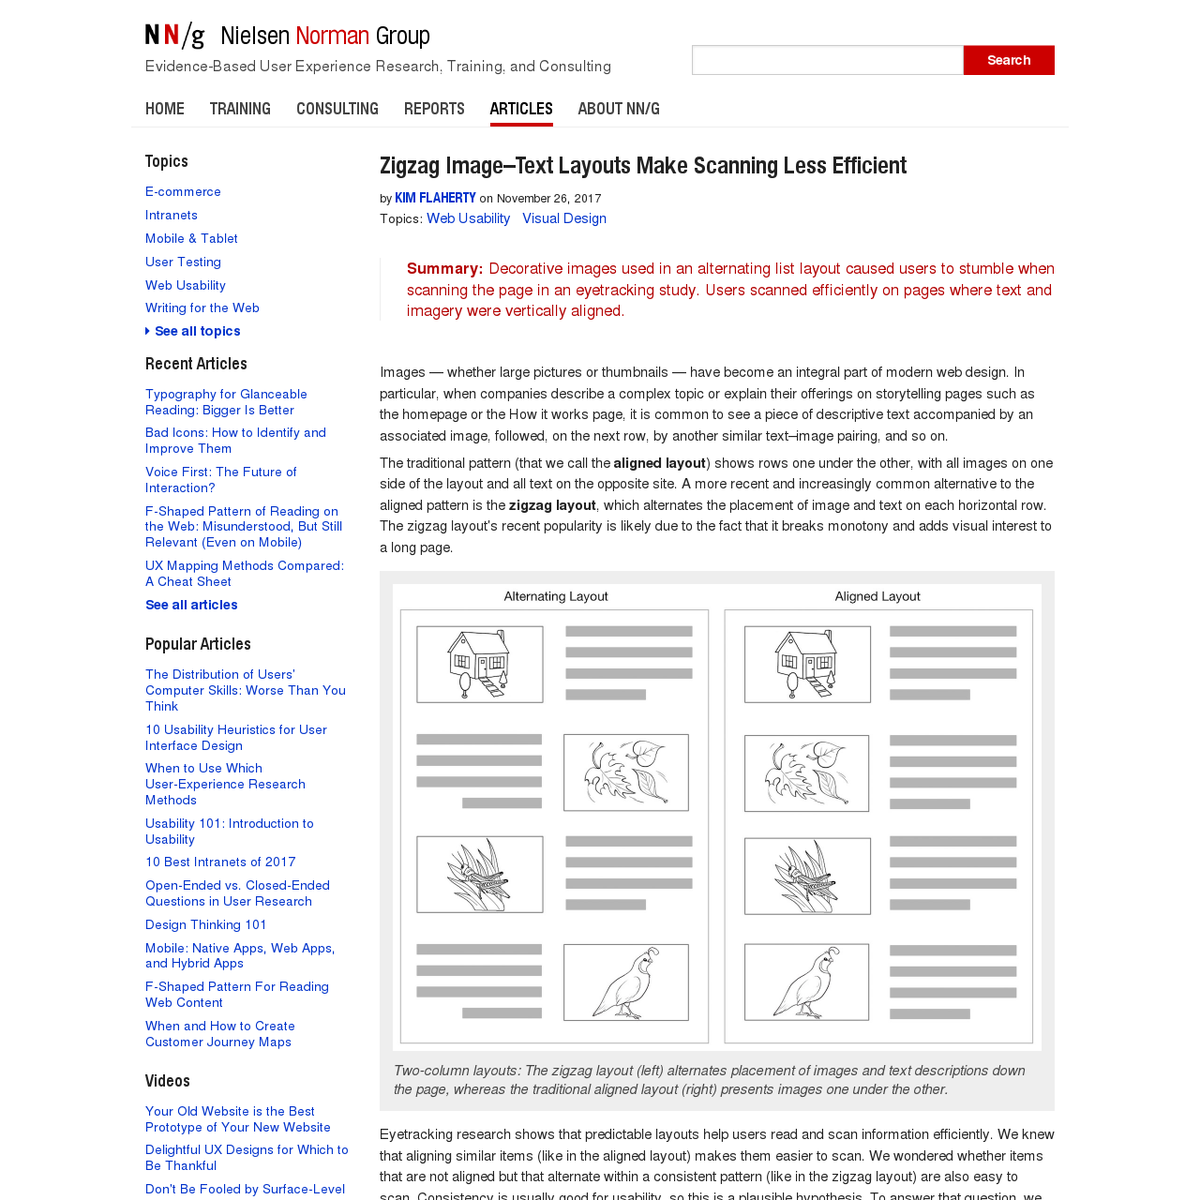 nngroup.com/articles/zigzag-page-layout/